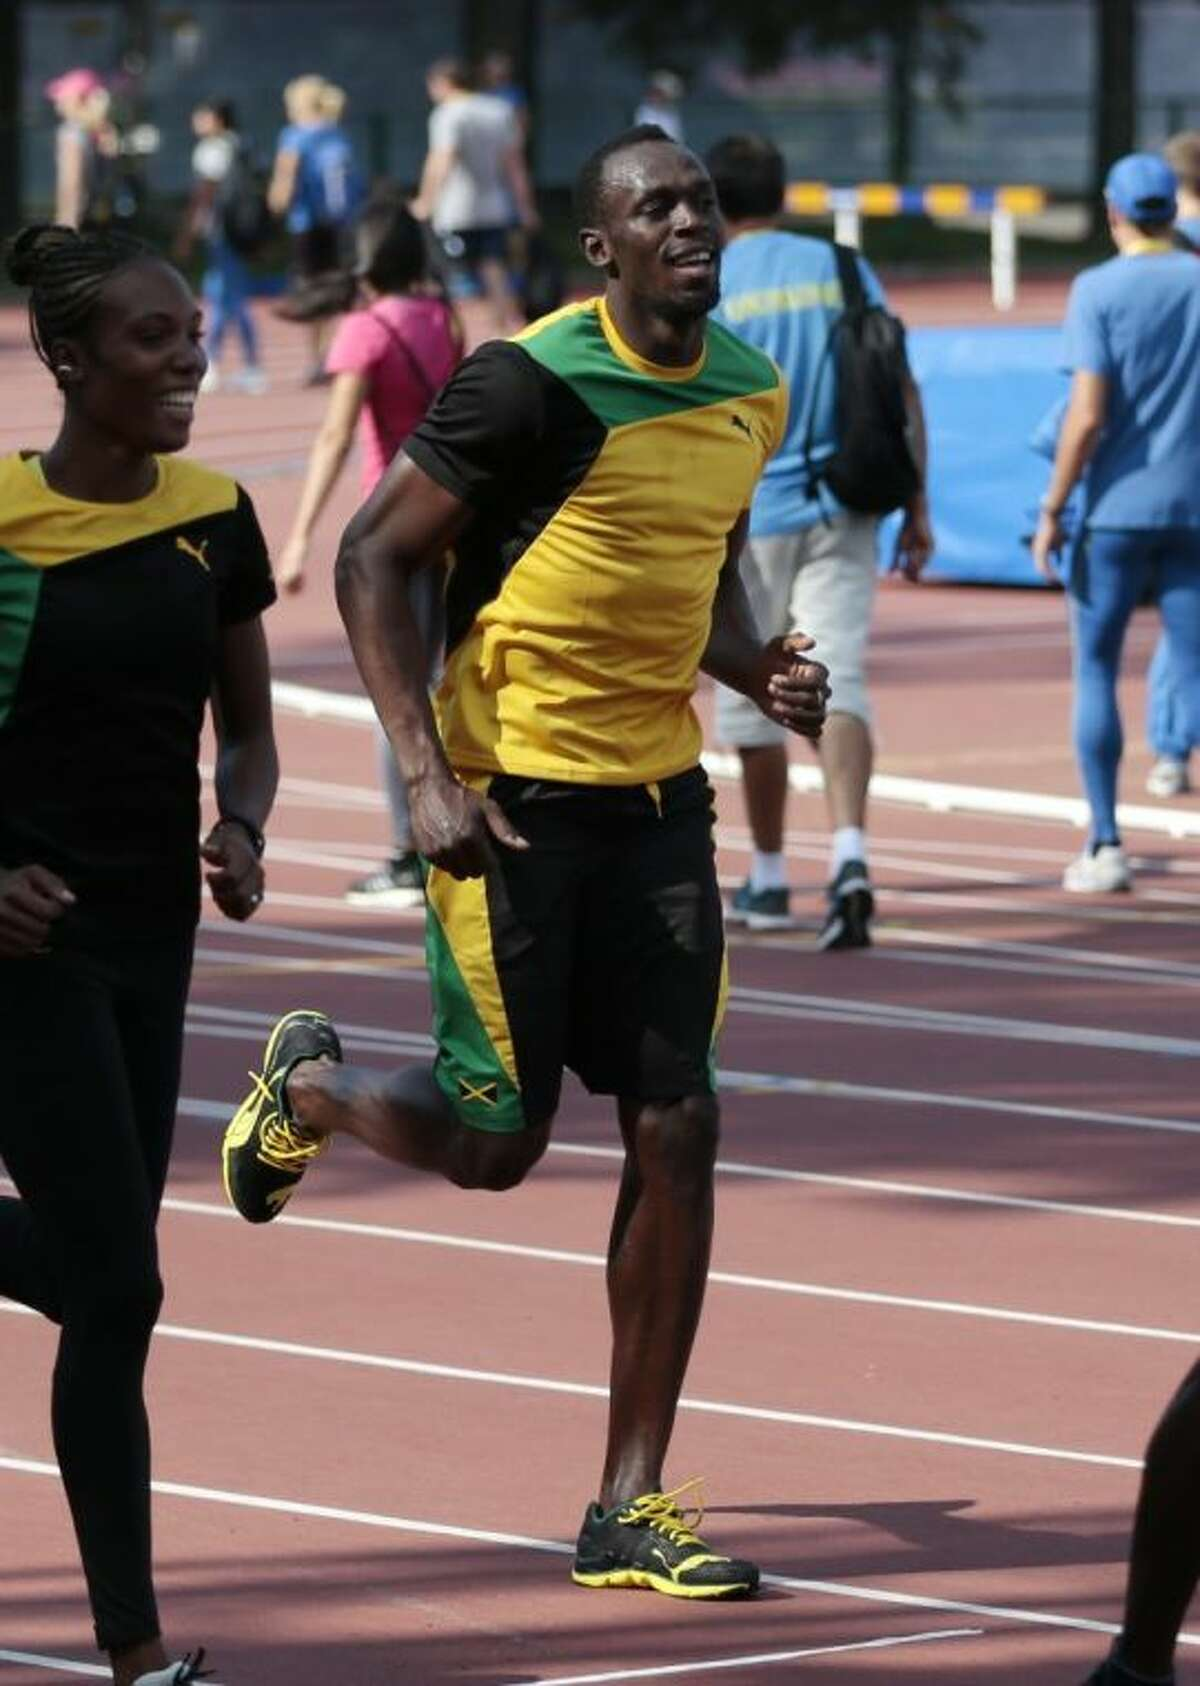 Jamaica's Usain Bolt jogs during a national team training session on Thursday ahead of the IAAF World Championships in Moscow.